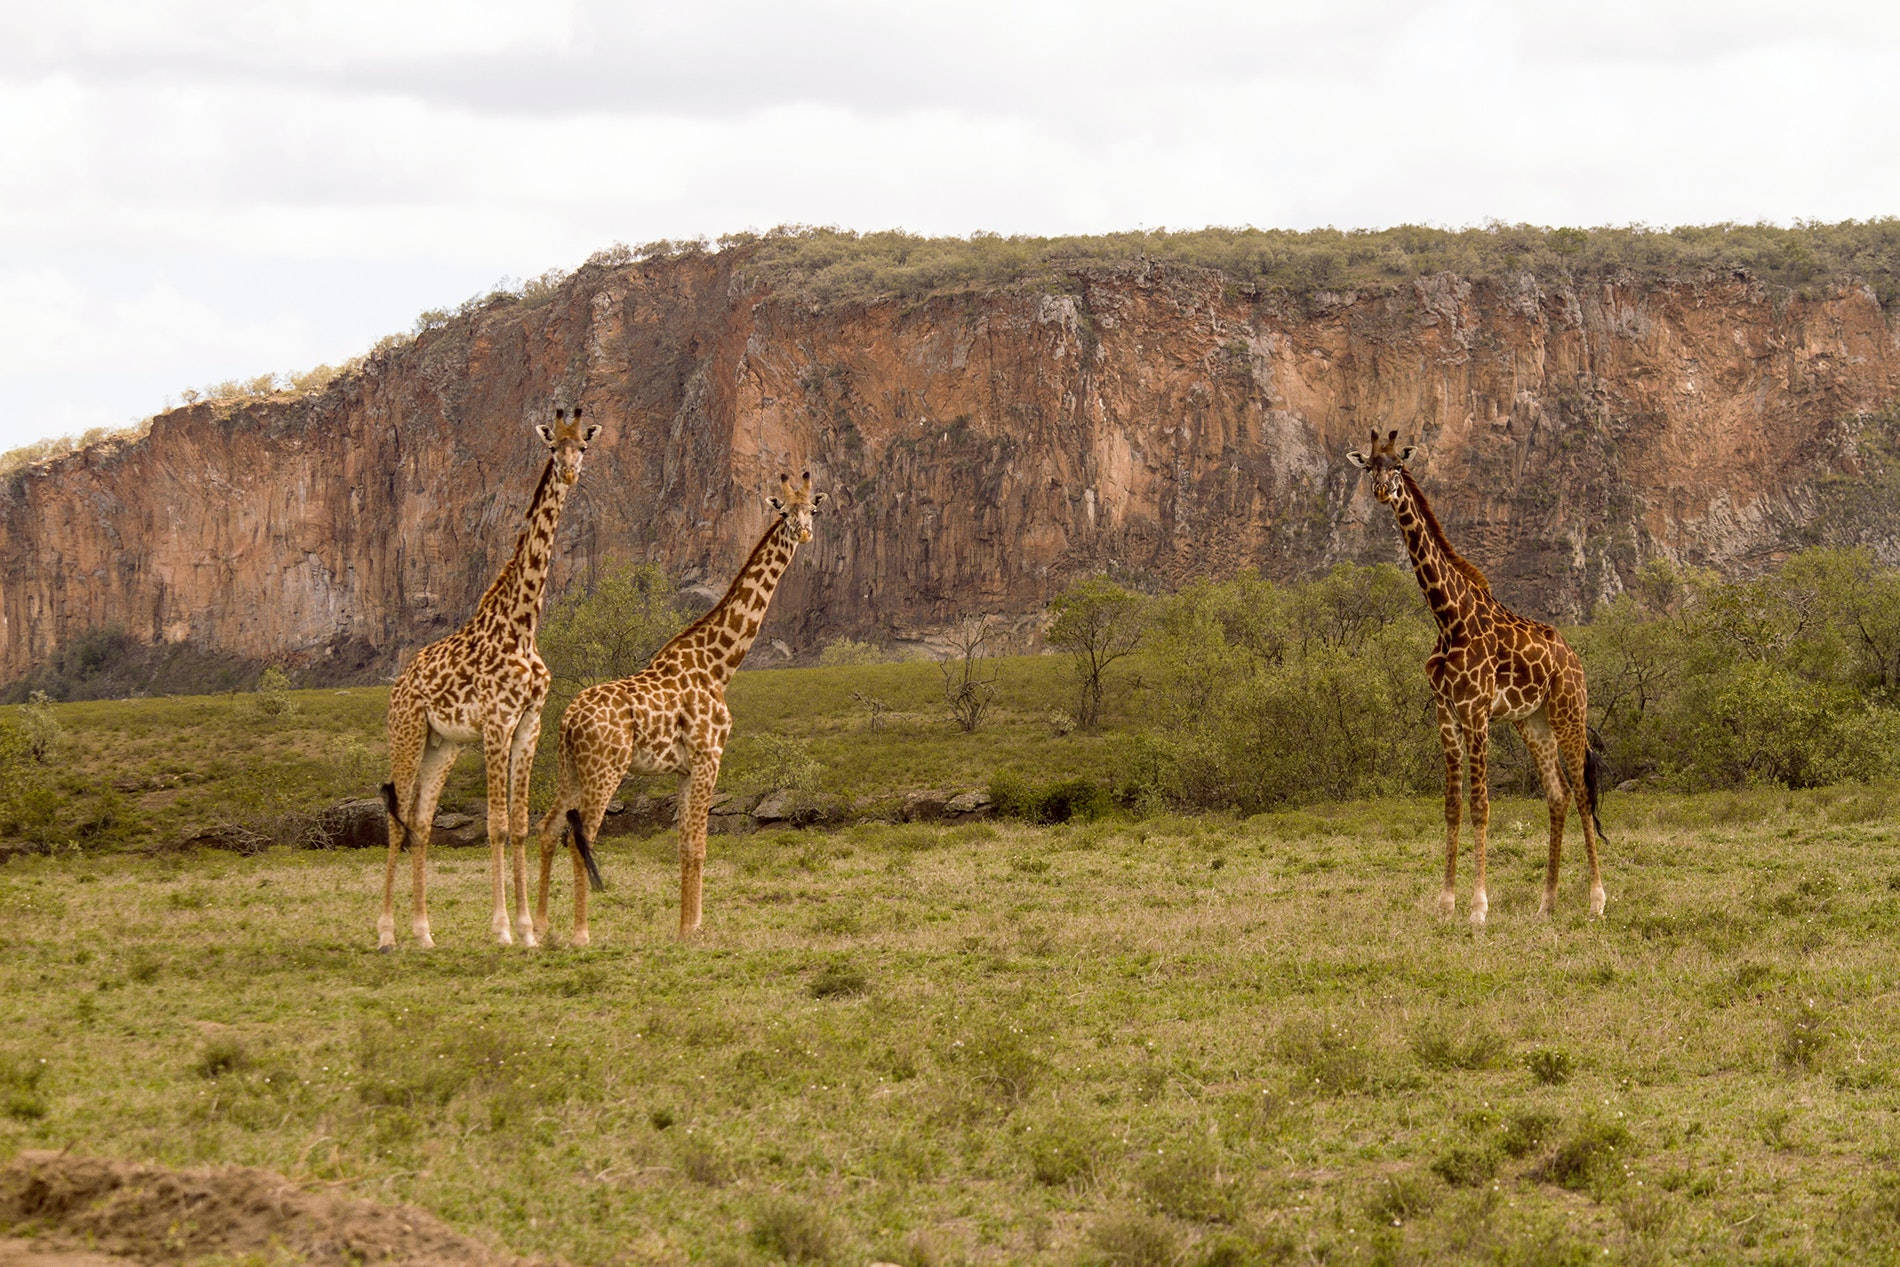 The sheer walls of Hell's Gate National Park create a haven for peaceful creatures.